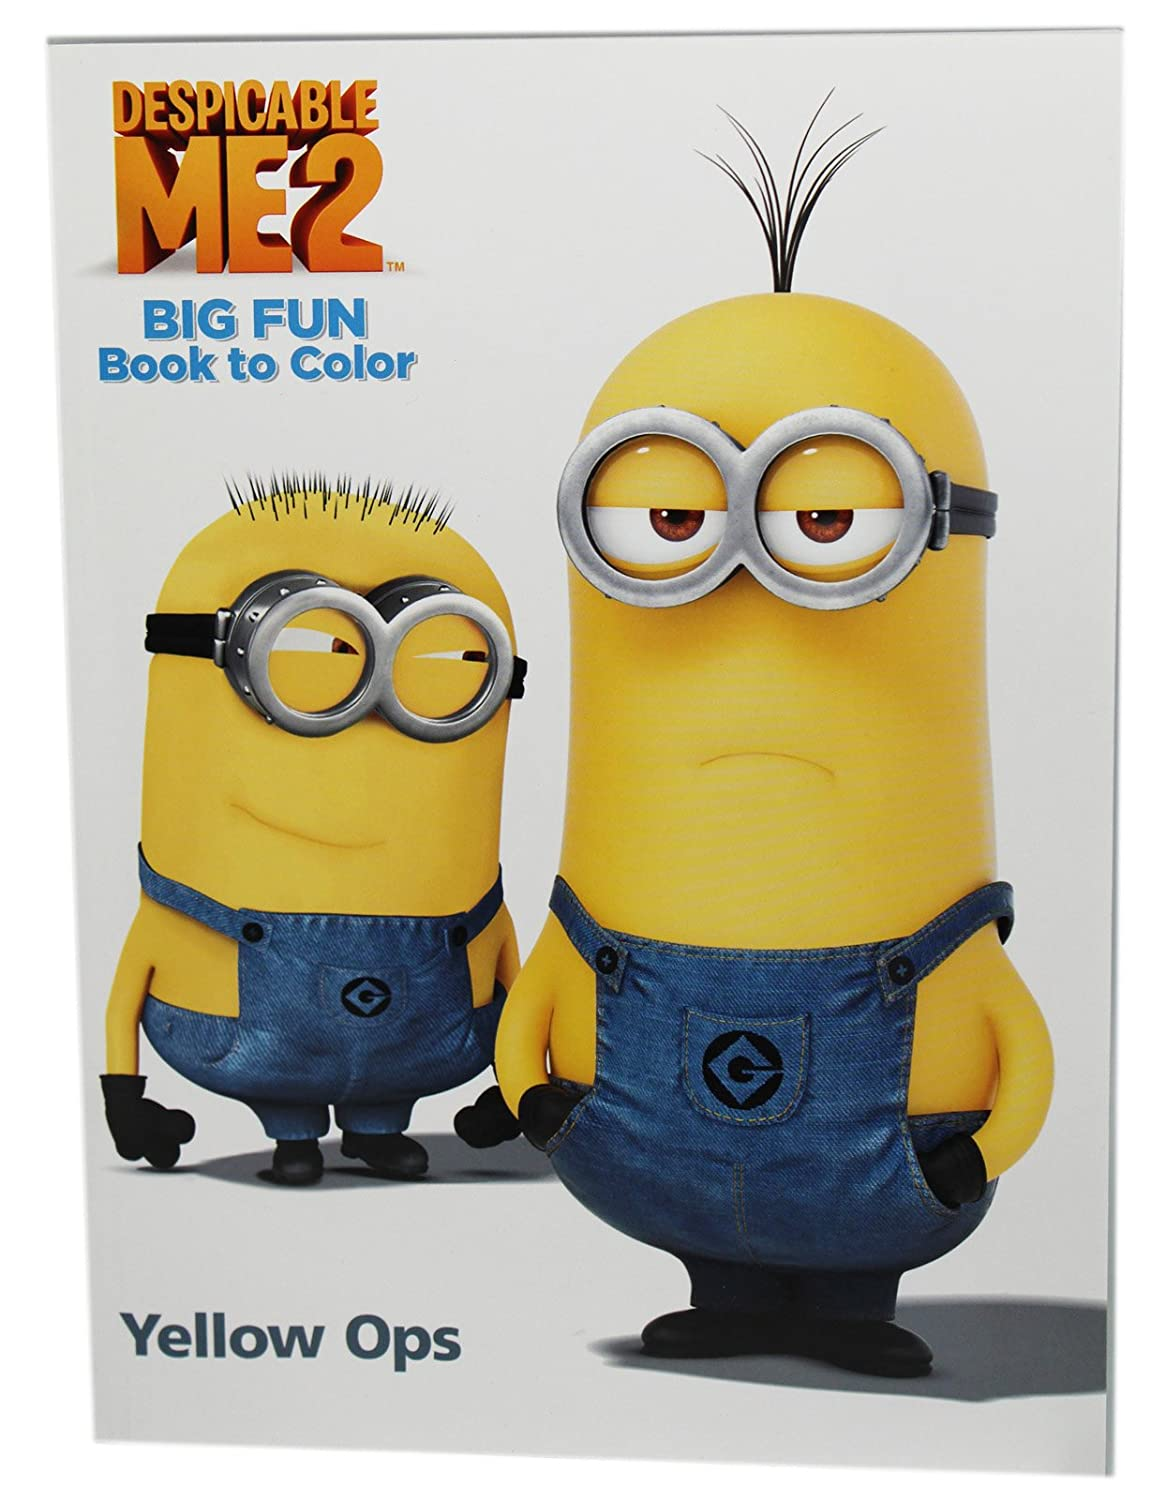 Dispicable Me 2 Big fun Book to Color Yellow Ops Coloring Book 4sg